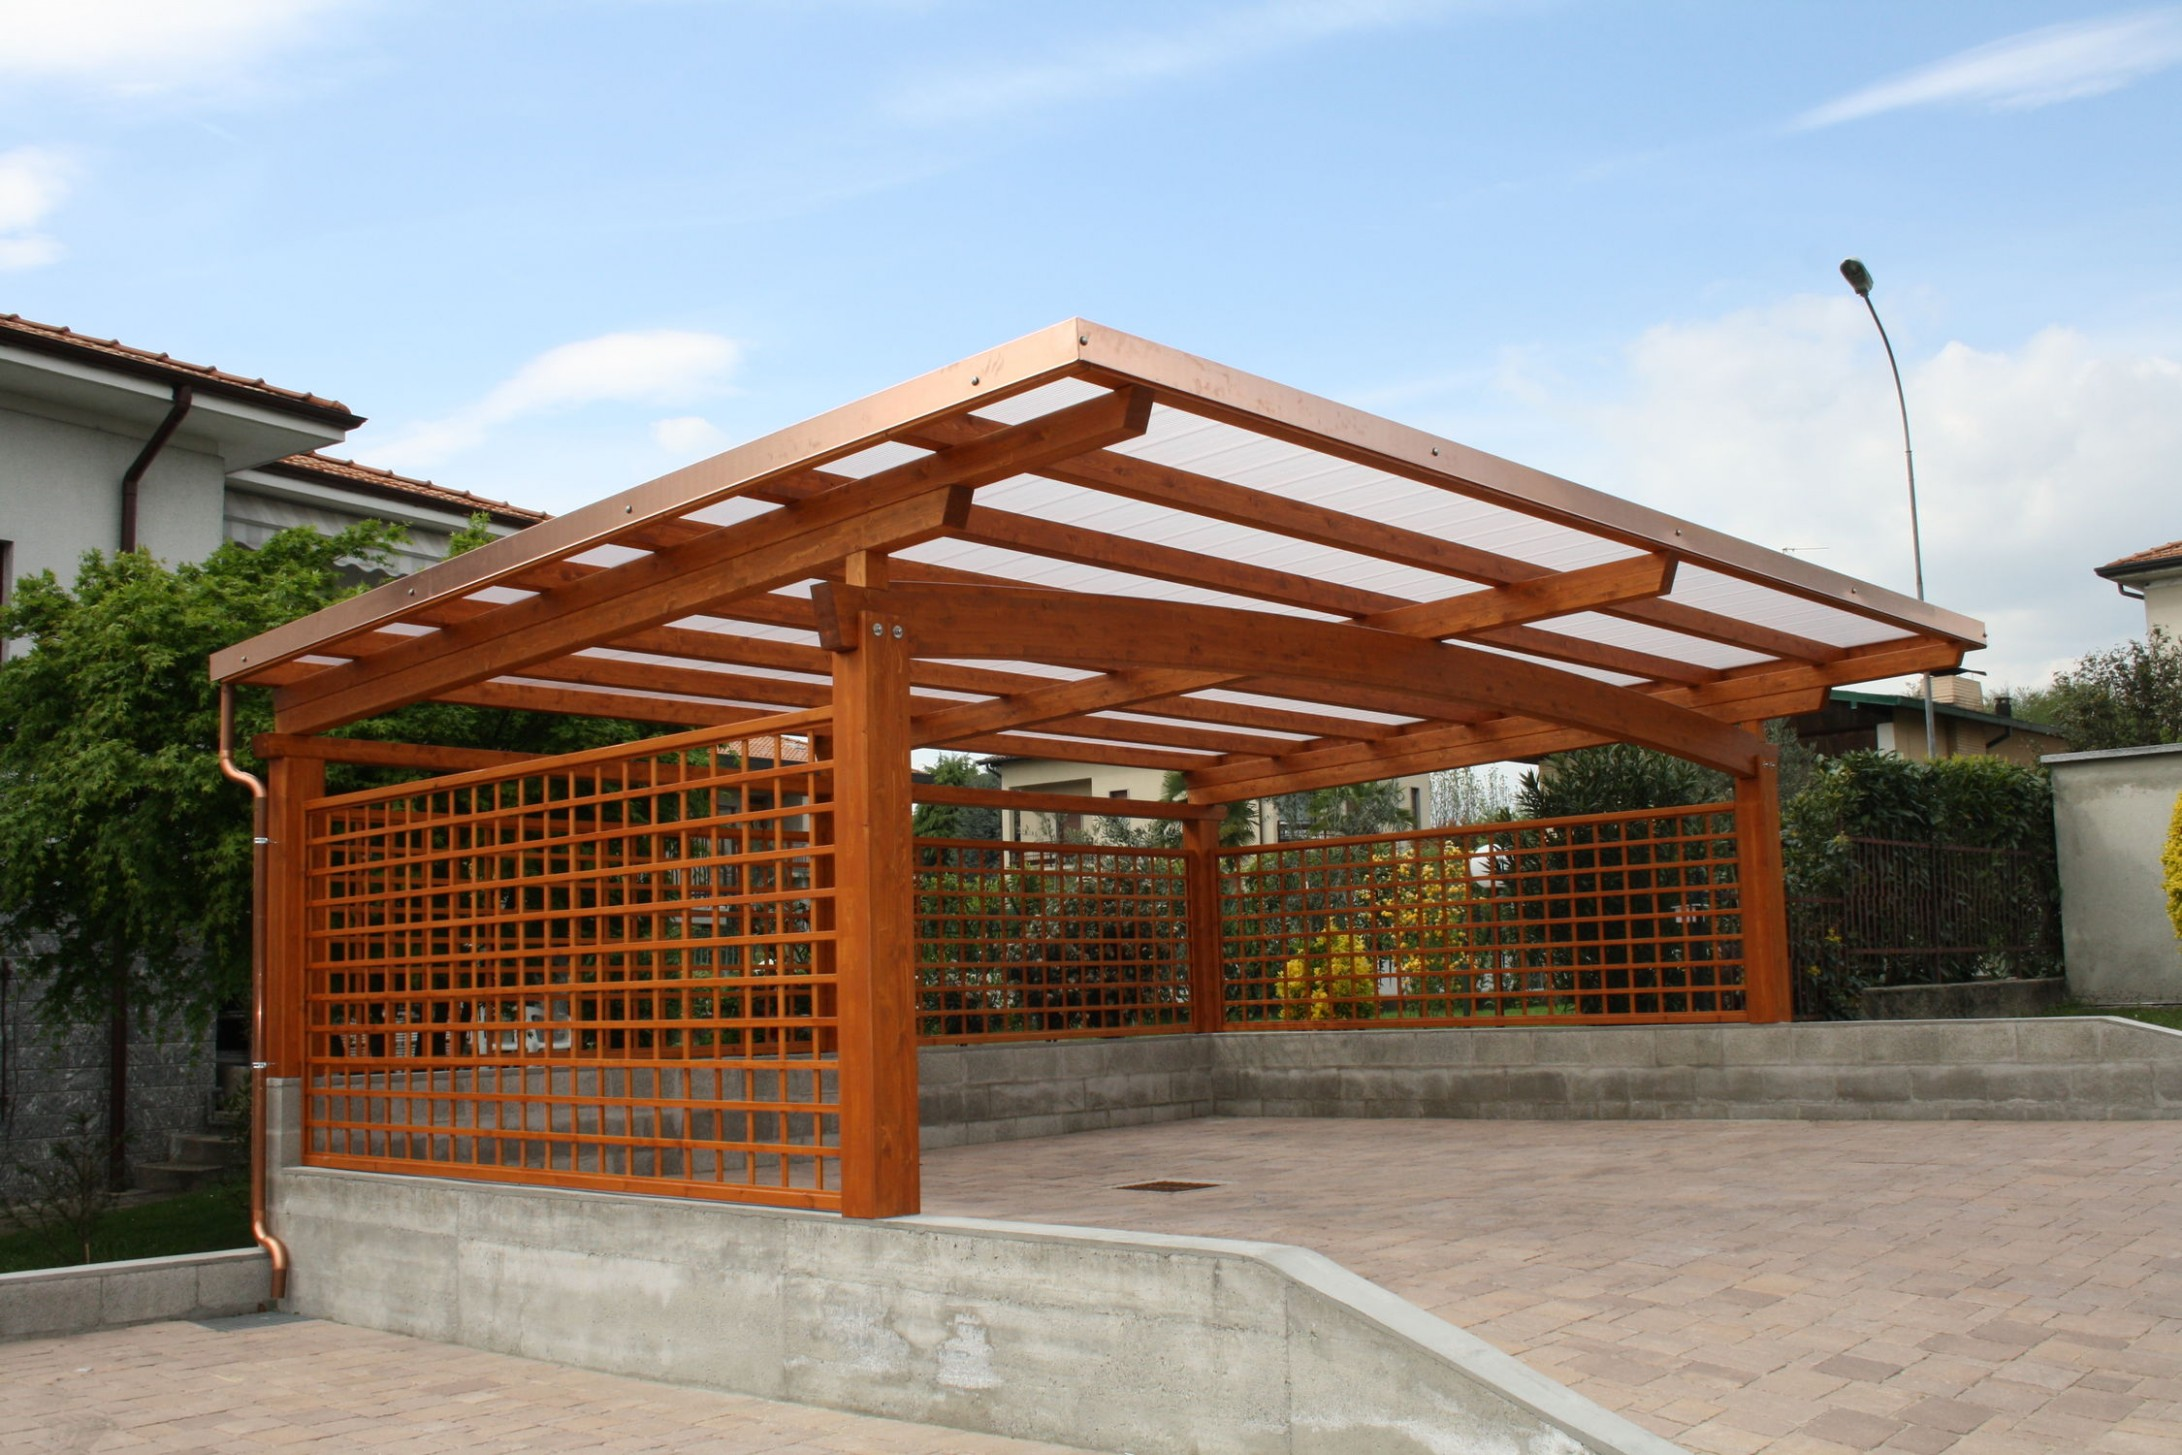 Here's Why You Should Attend Diy Carports And Canopies | diy carports and canopies